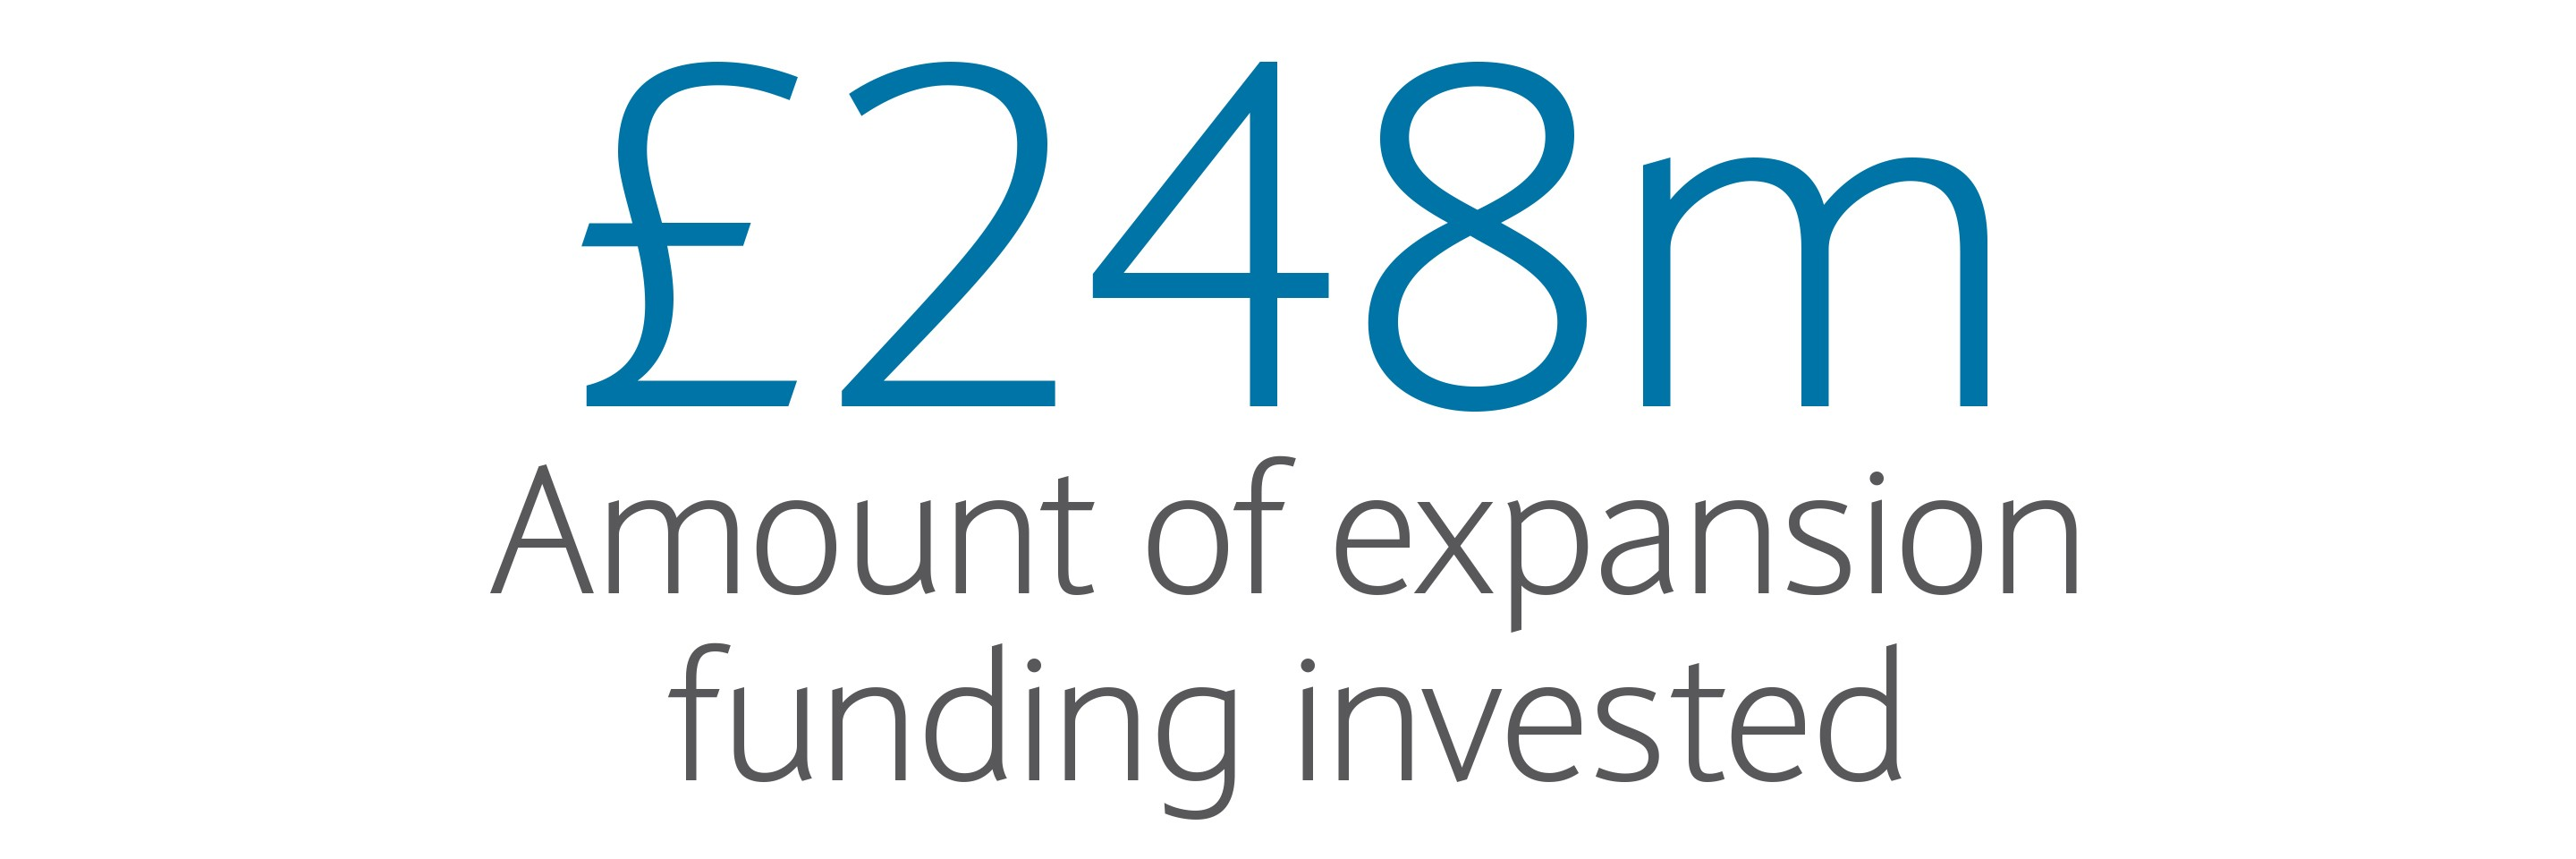 £248m: Amount of expansion funding invested